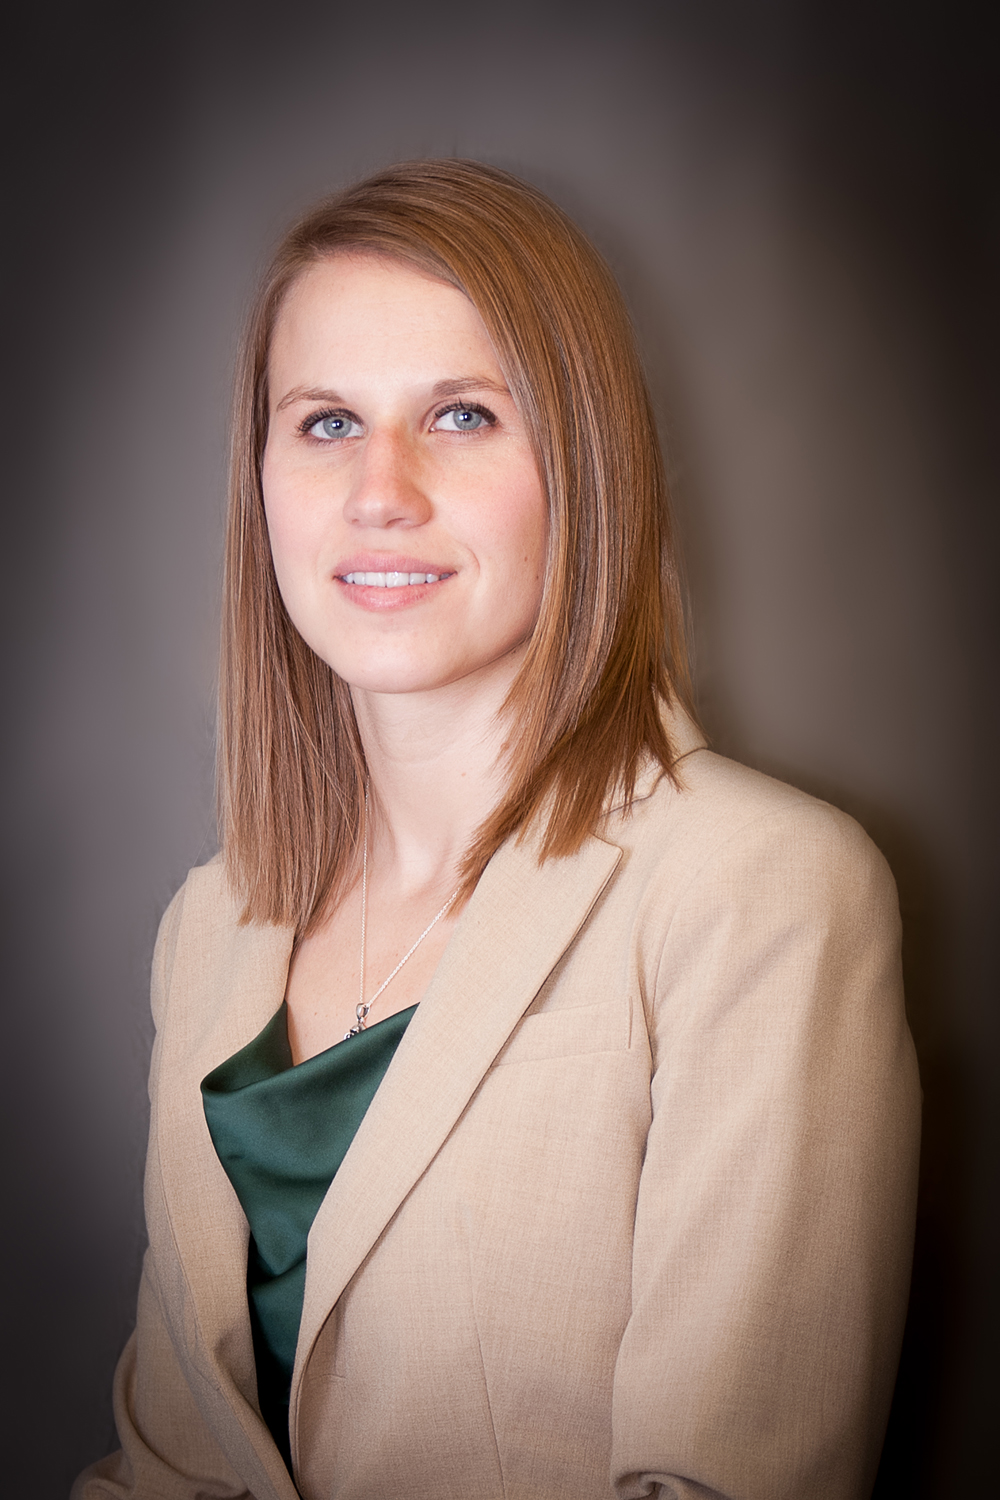 Amanda Civic Opens Civic Law Firm Nebraska Today